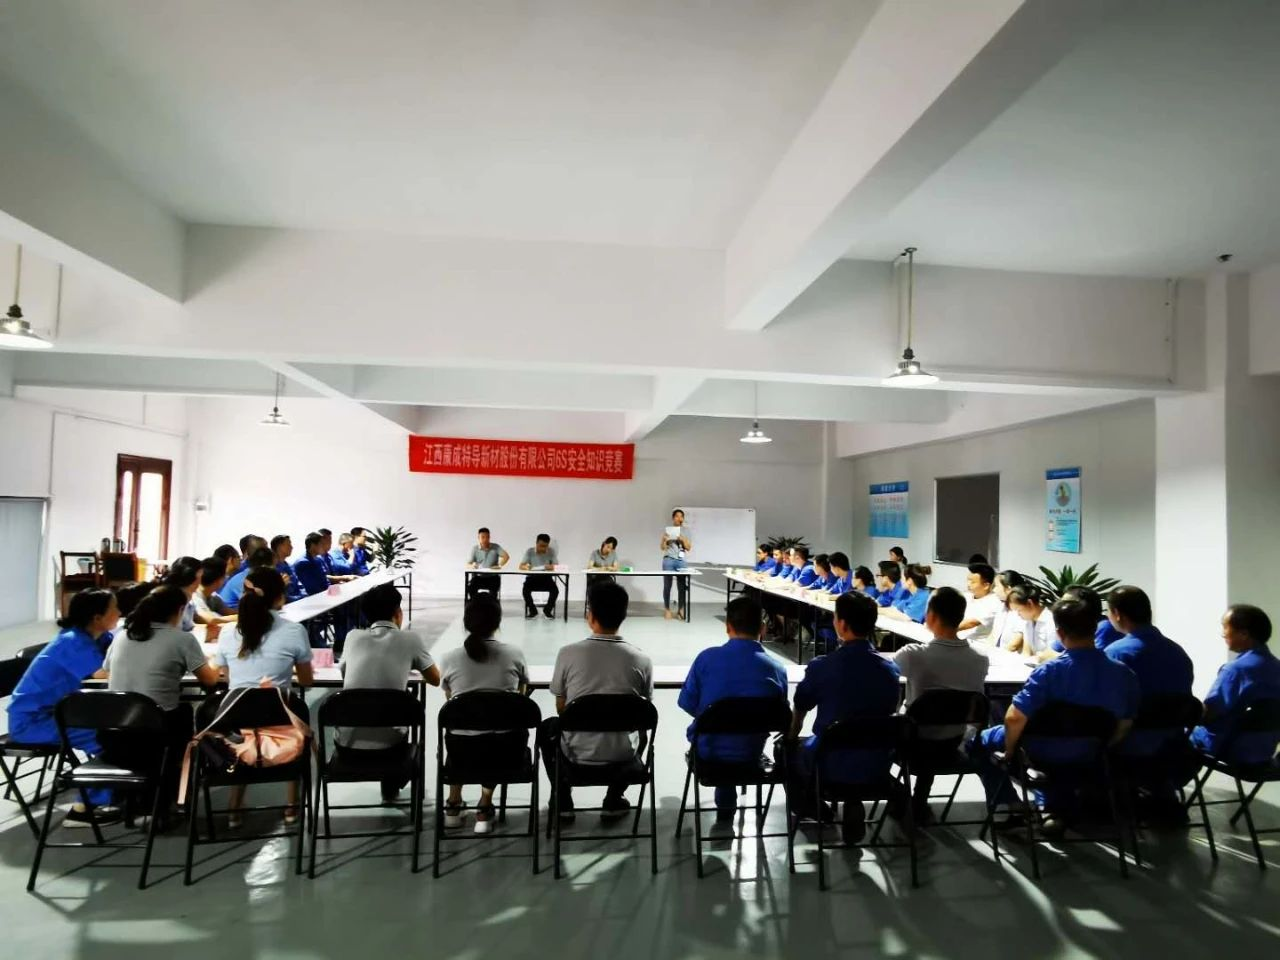 6S safety knowledge competition held smoothly